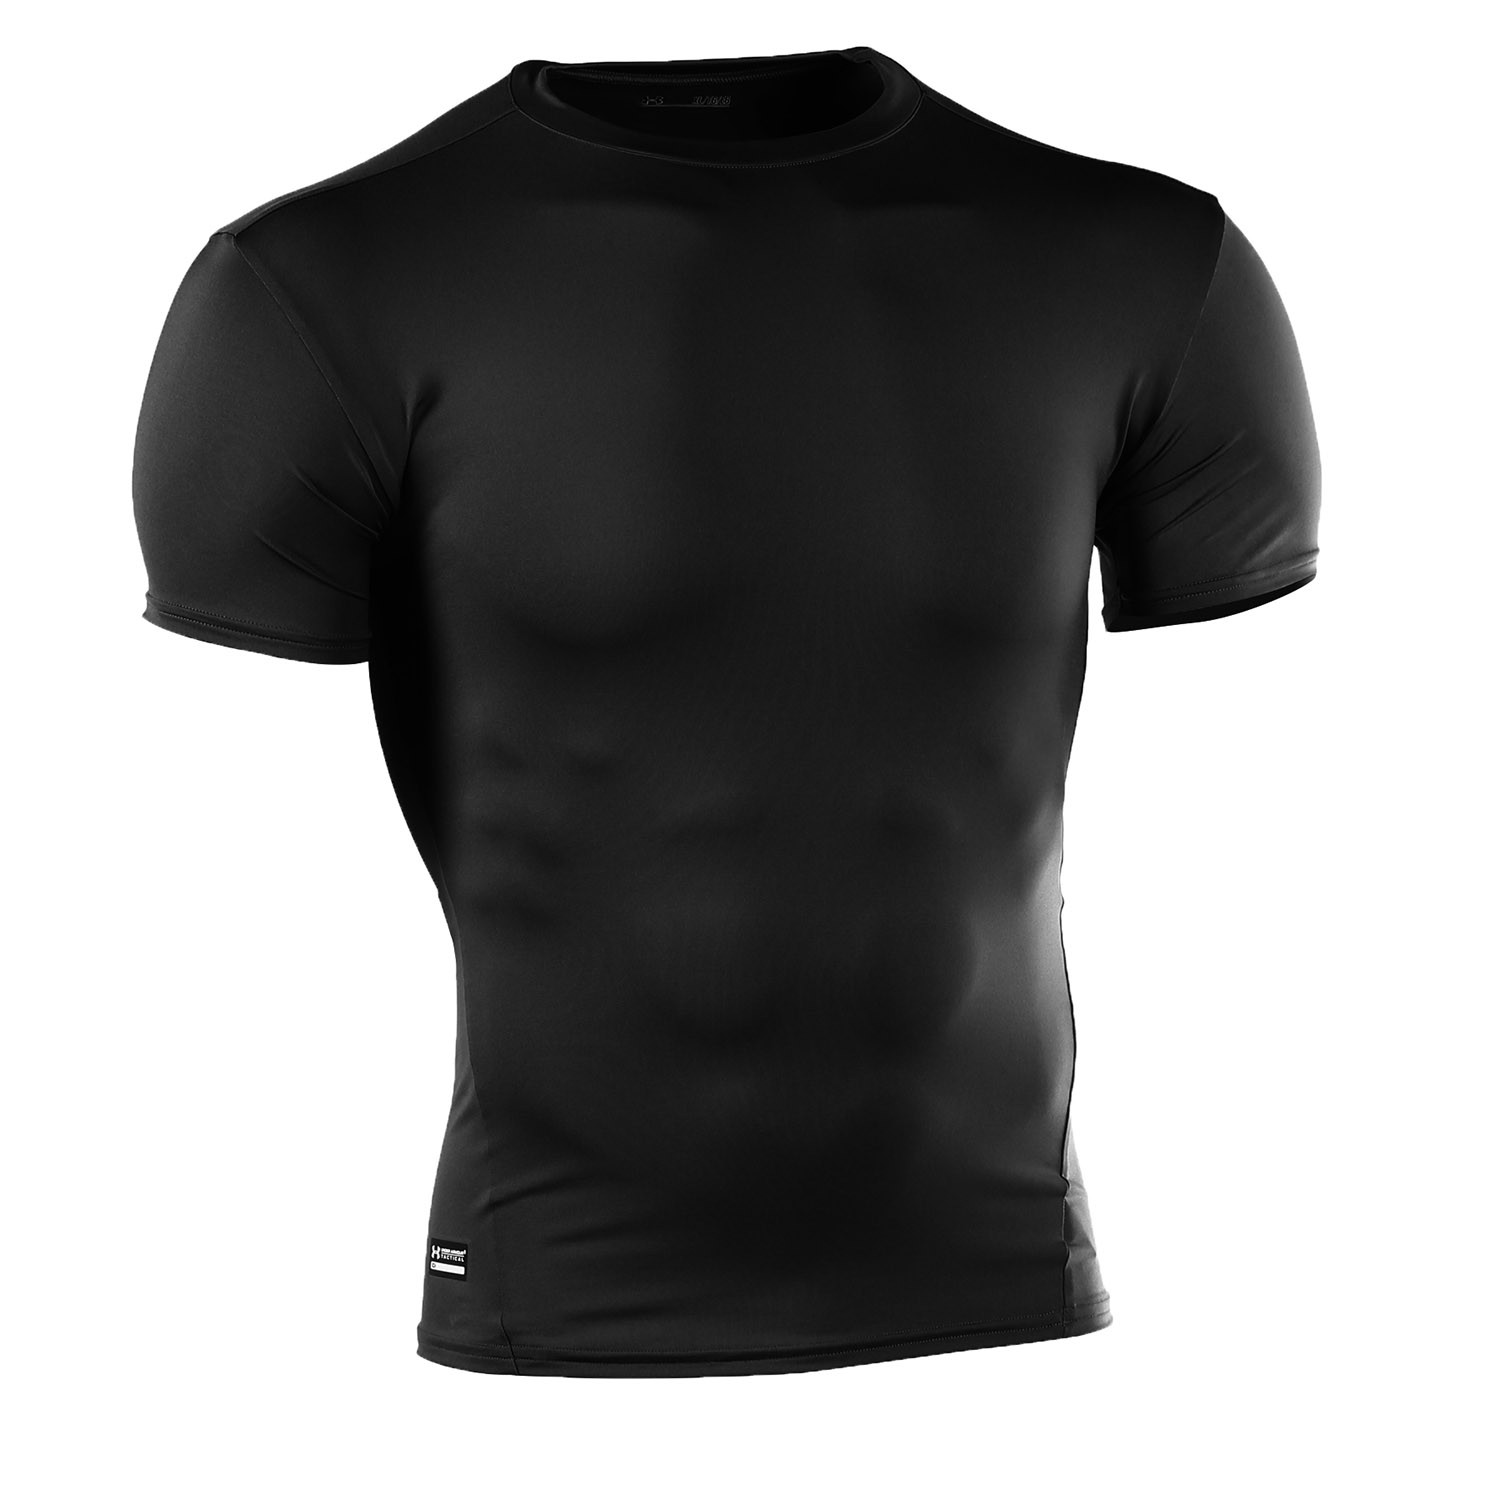 a08712bc The Best Compression Shirts for Men - Garage Gym Builder